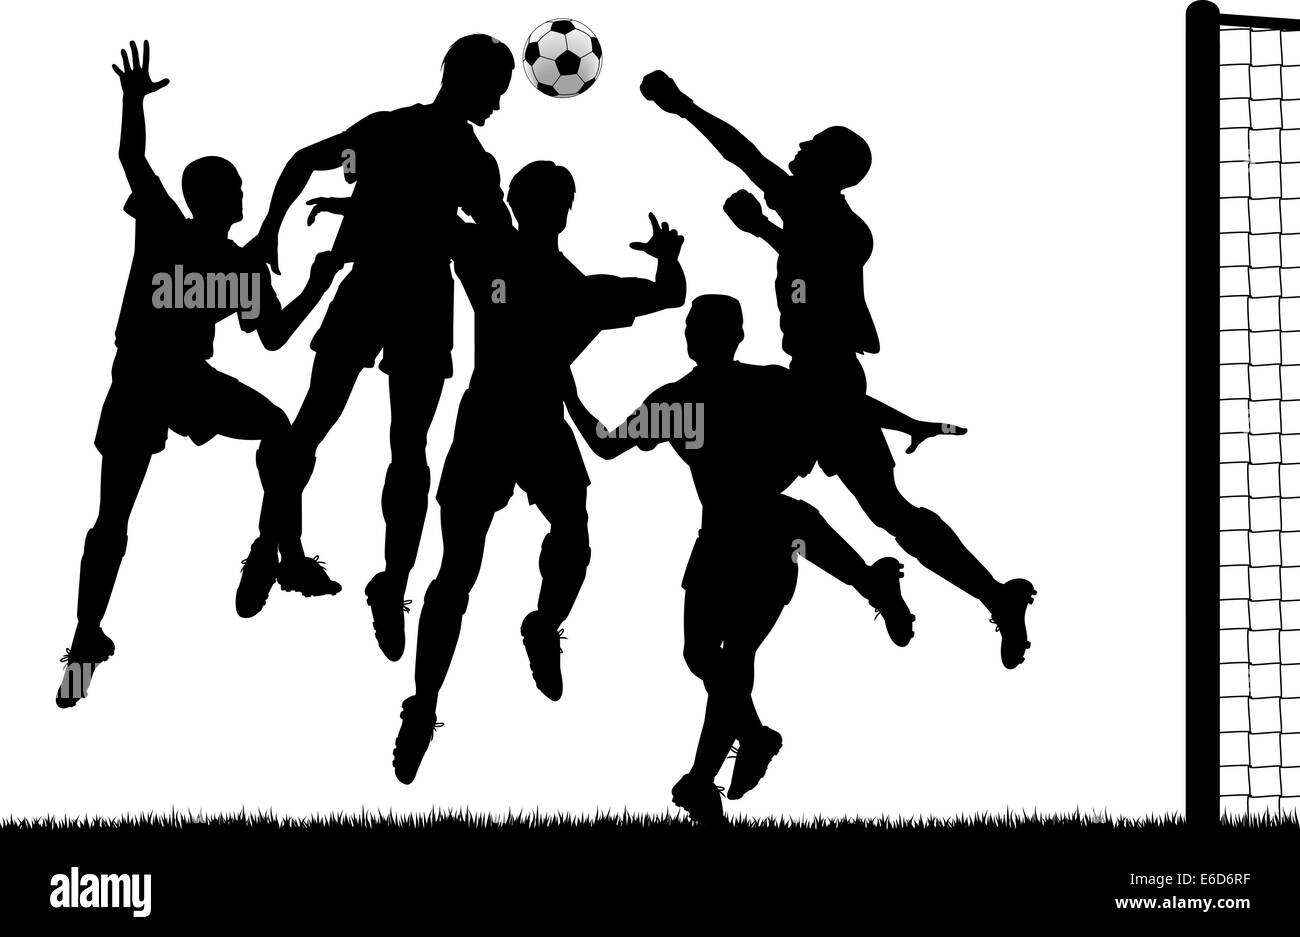 Editable vector silhouette of a footballer heading the ball at goal with all players as separate objects - Stock Vector